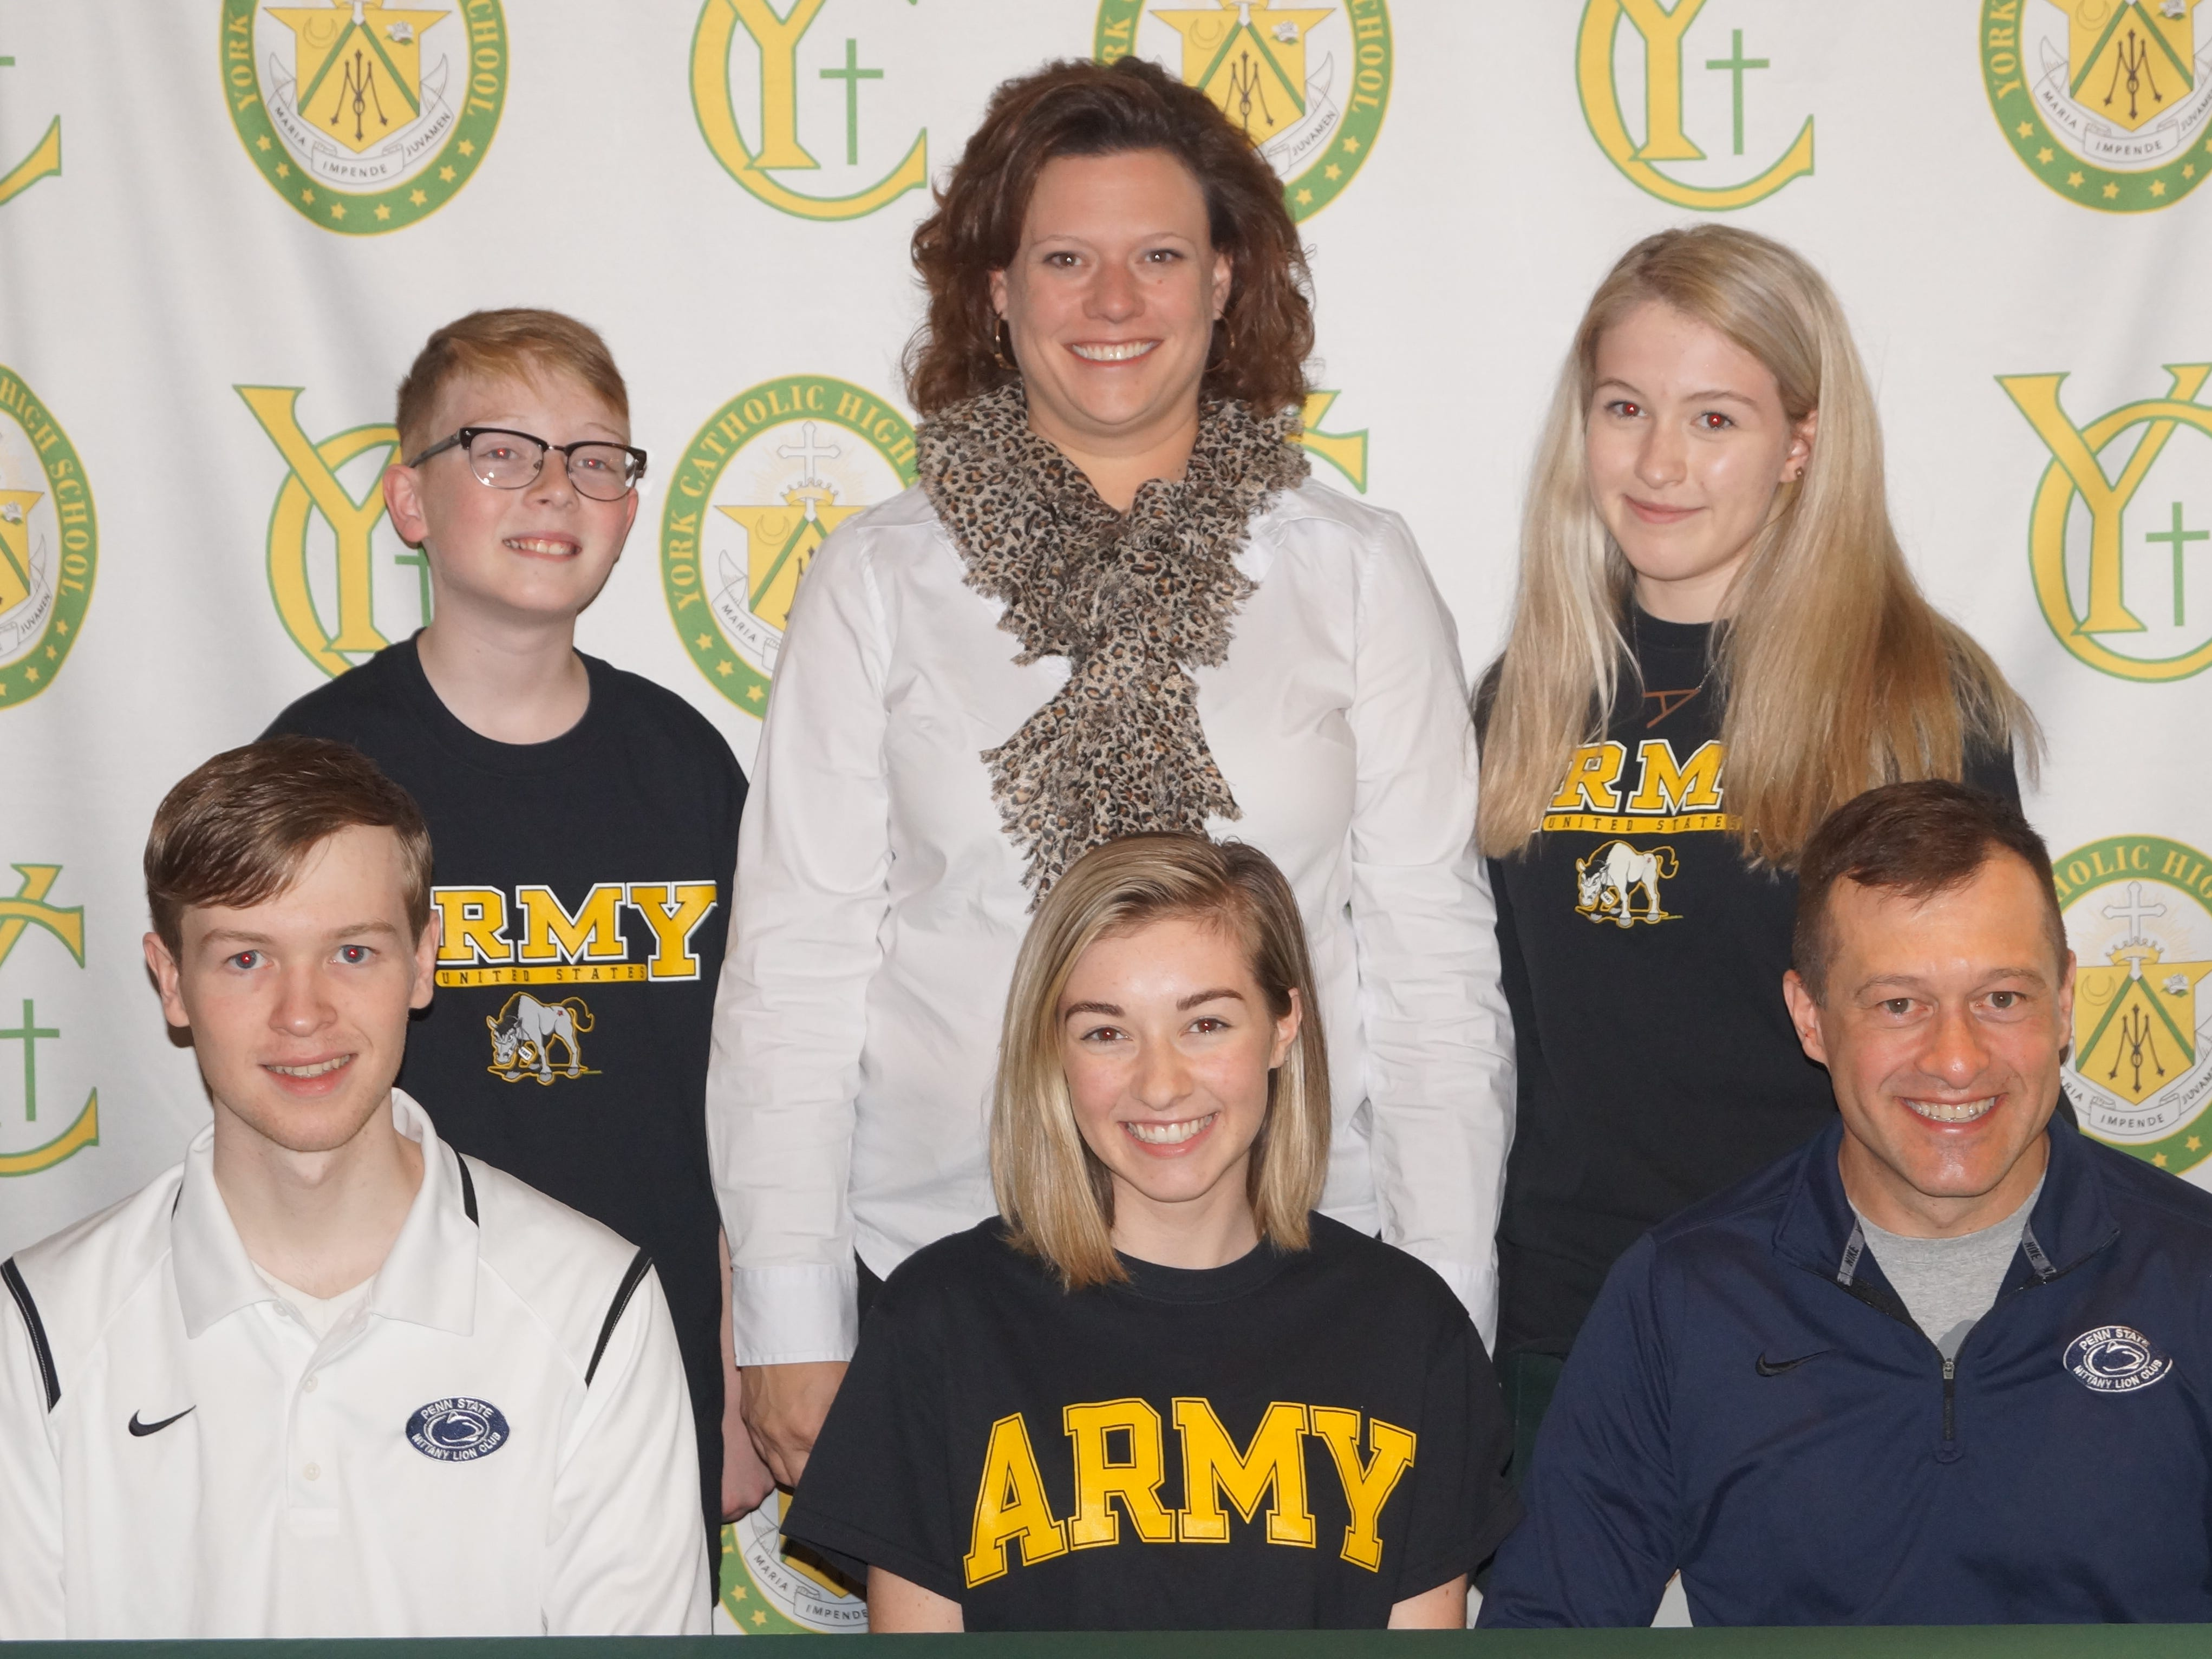 York Catholic High SchoolÕs Megan Hale has committed to the United States Army Reserve Officer Training Corps (ROTC) while continuing her education at Penn State University in University Park, PA. Hale is an Honor Roll student and a member of the National Honor Society.  She is also a member of the Cross Country team, Varsity Club, Spanish Club, Musical, Students Against Destructive Decisions, and is a Eucharistic Minister. While at York Catholic, she has received honors for maintaining a 93% or higher in all of her classes and for maintaining the highest average in Honors Chemistry.  Pictured are, front row from left: Trevor Hale, MeganÕs brother; Megan Hale; Jim Hale, father of Megan. Back Row:  Ryan Hale, MeganÕs brother; Katie Seufert, York Catholic Principal; Anna Hale, MeganÕs sister. submitted